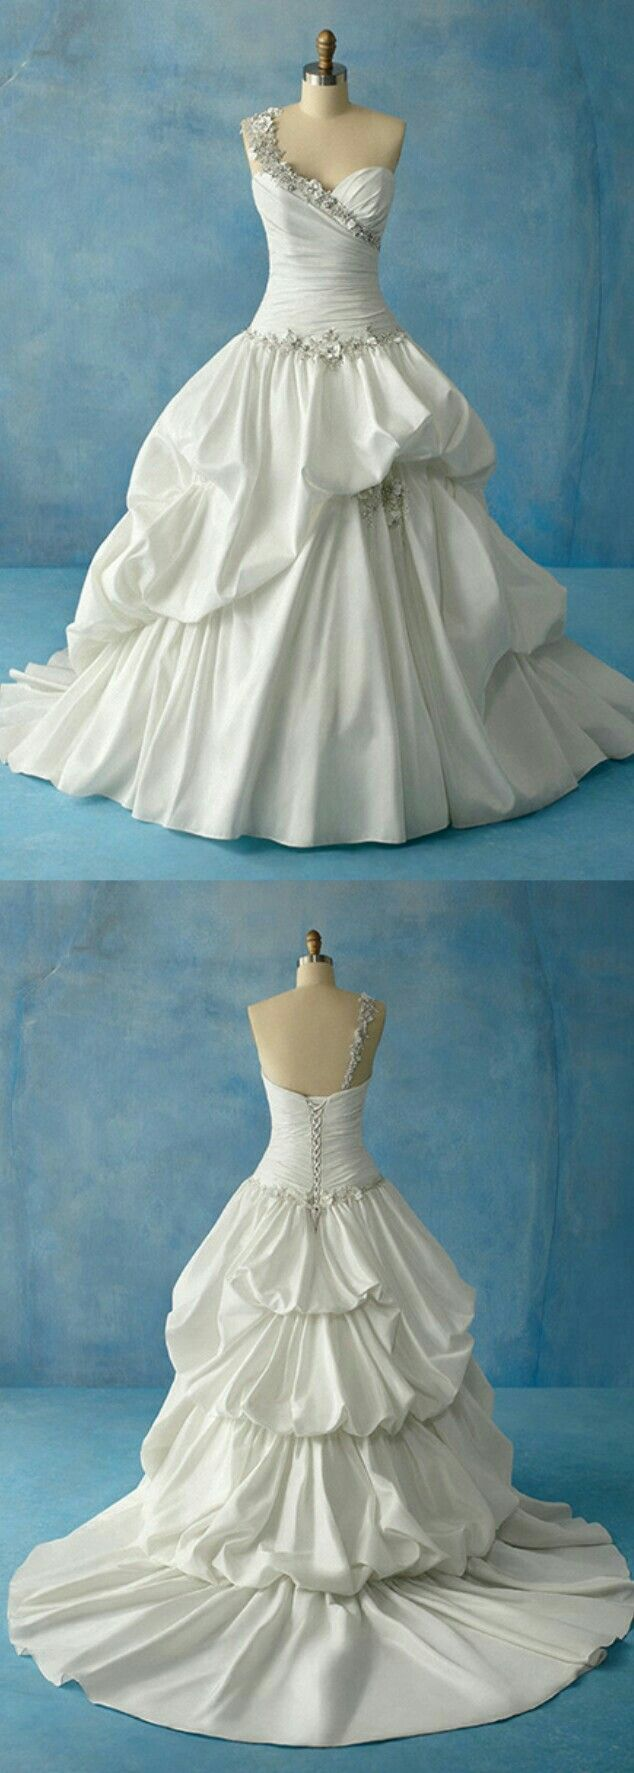 Outstanding Ellis Princess And The Frog Wedding Dress Image ...